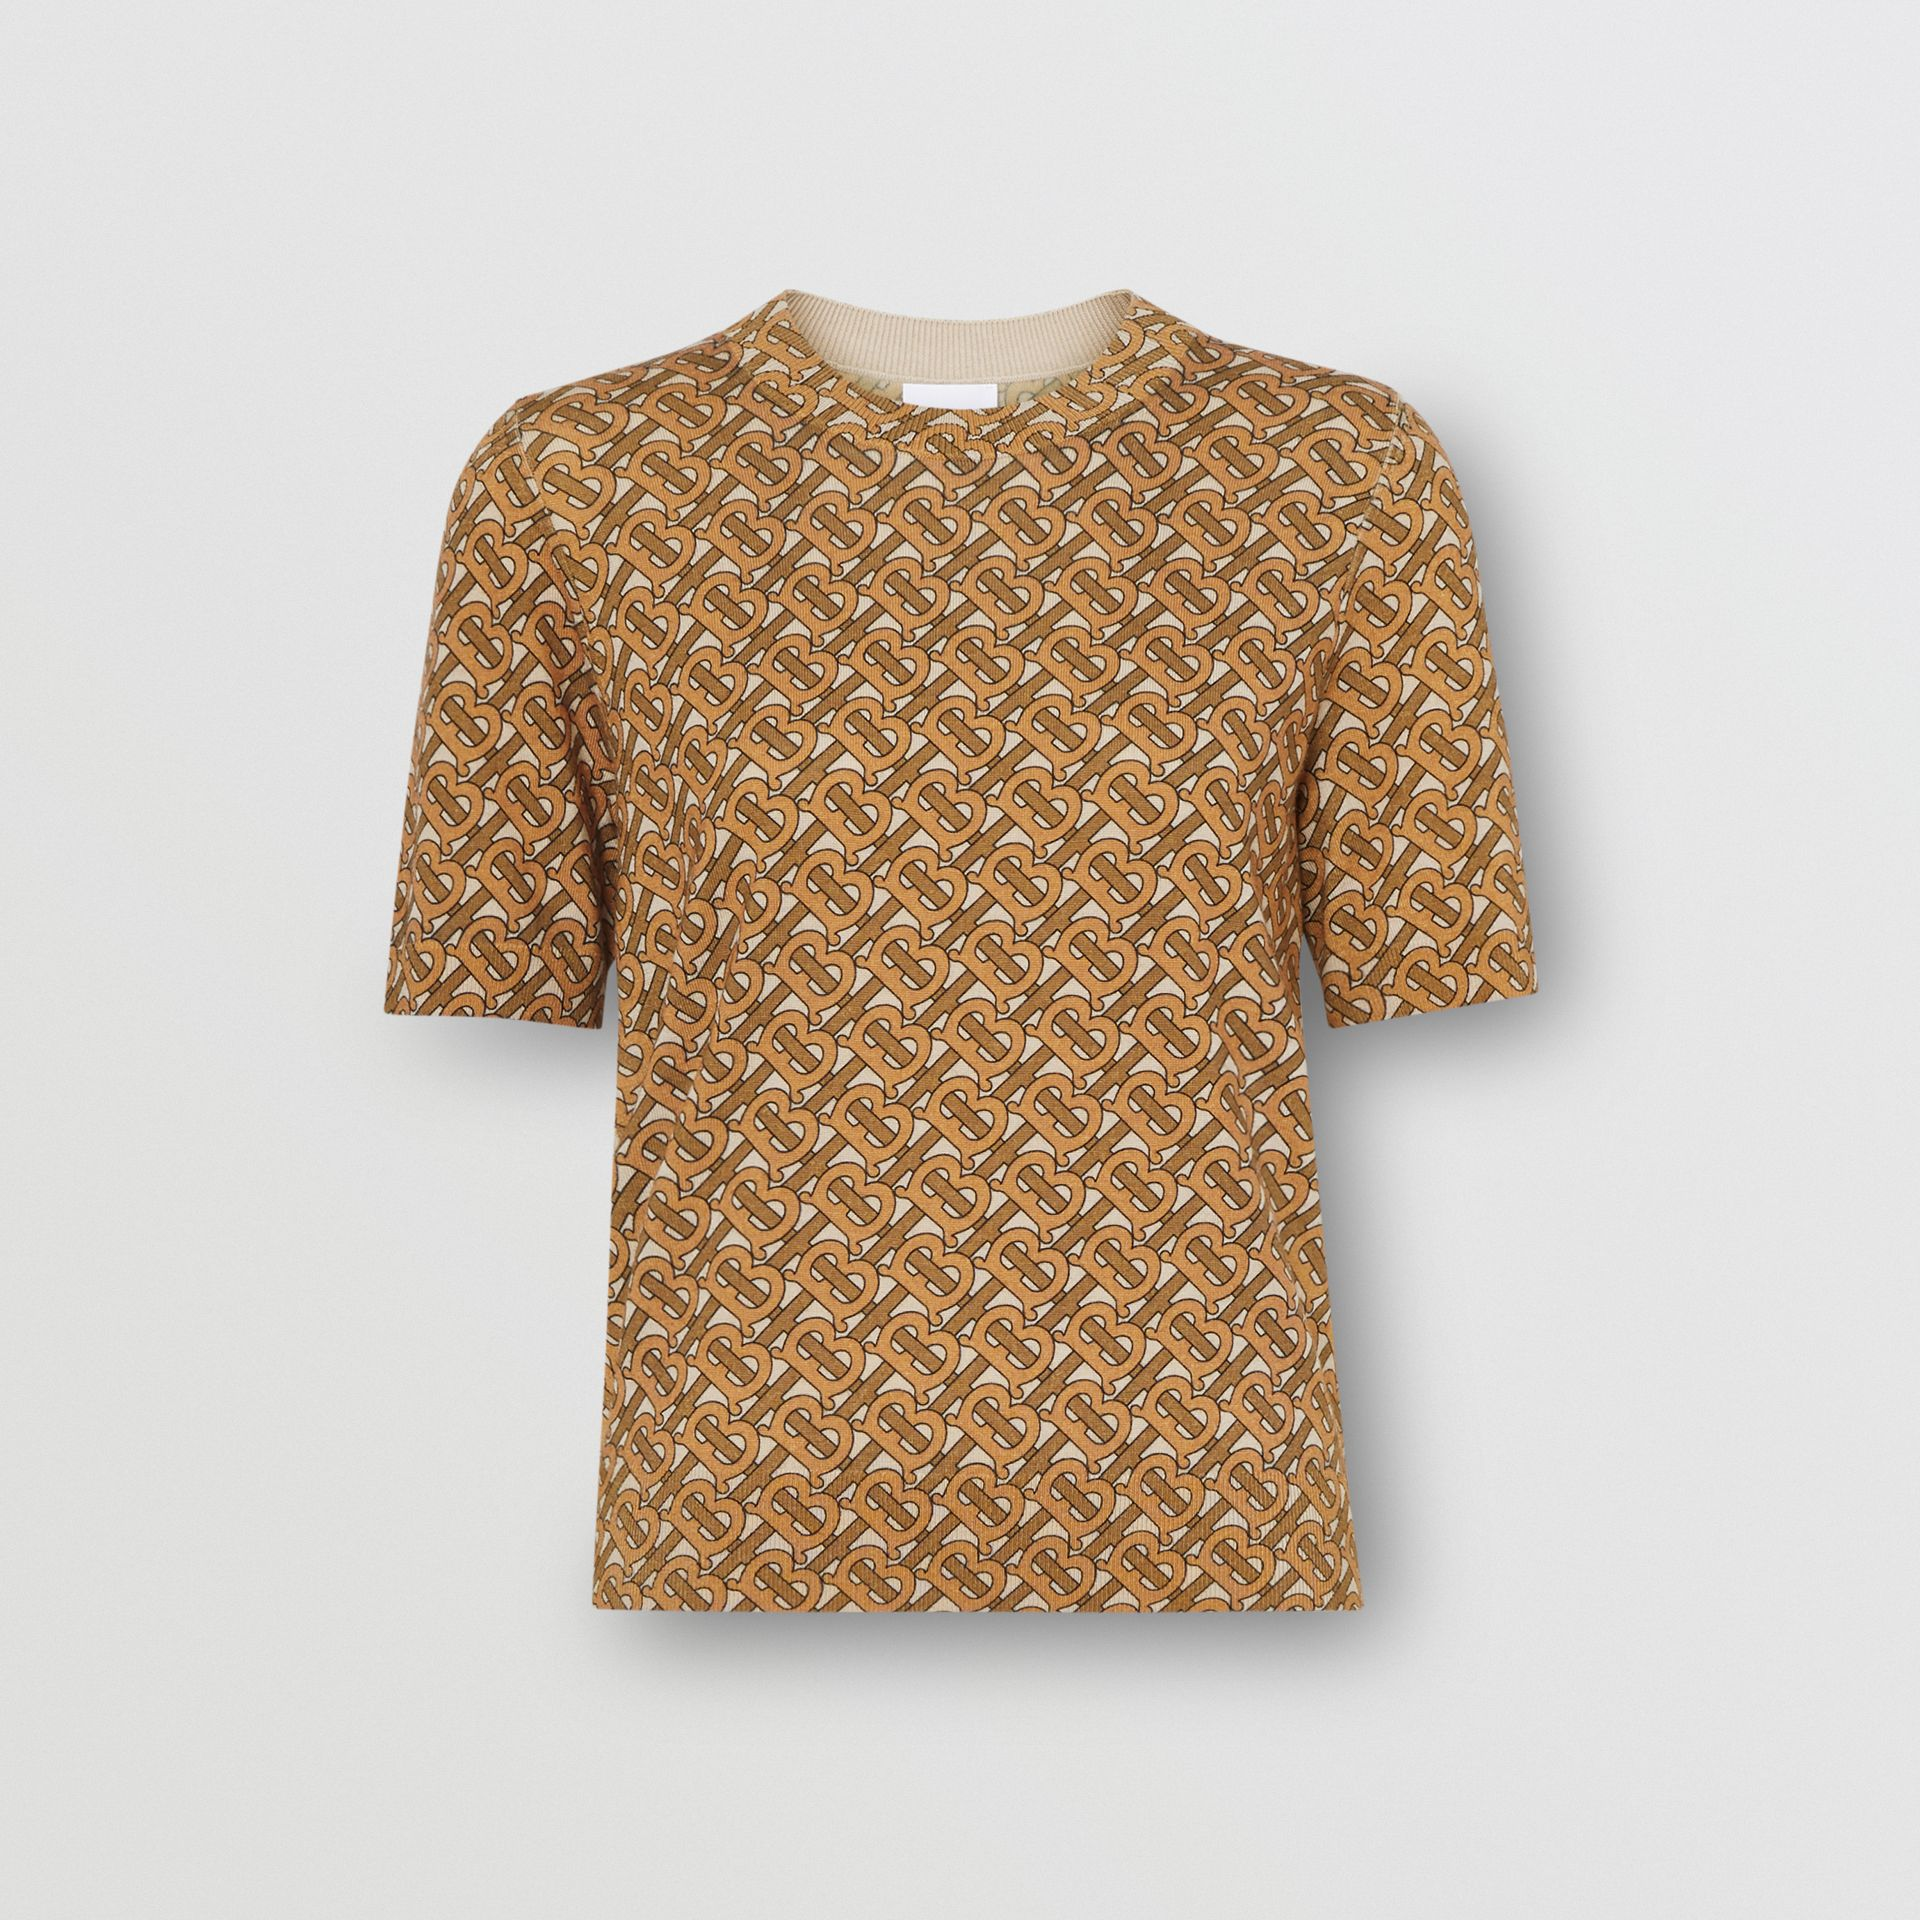 Monogram Print Merino Wool Top in Beige - Women | Burberry Singapore - gallery image 3